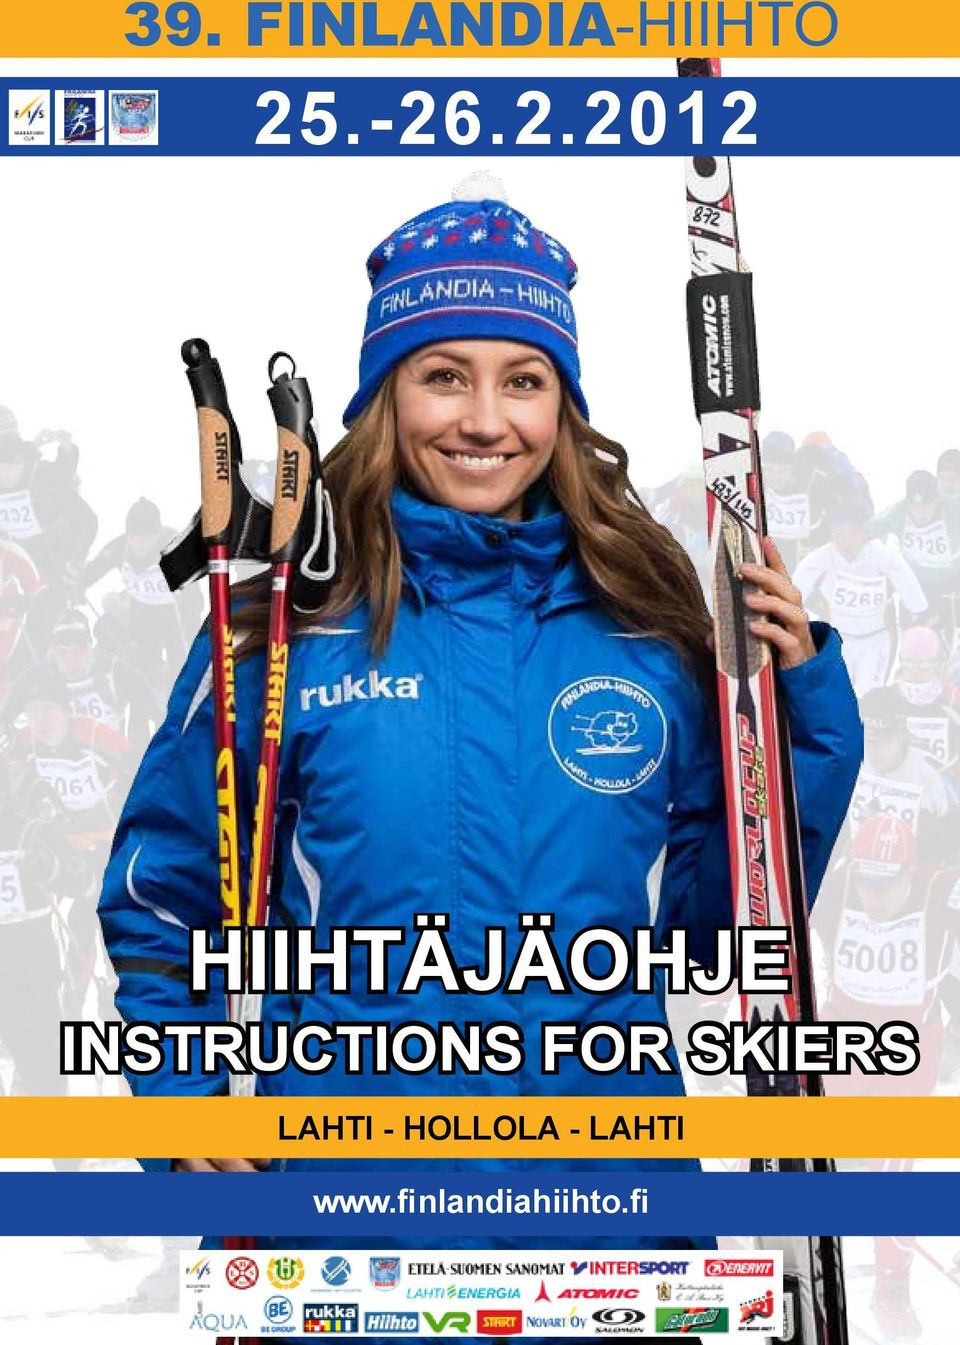 INSTRUCTIONS FOR SKIERS LAHTI